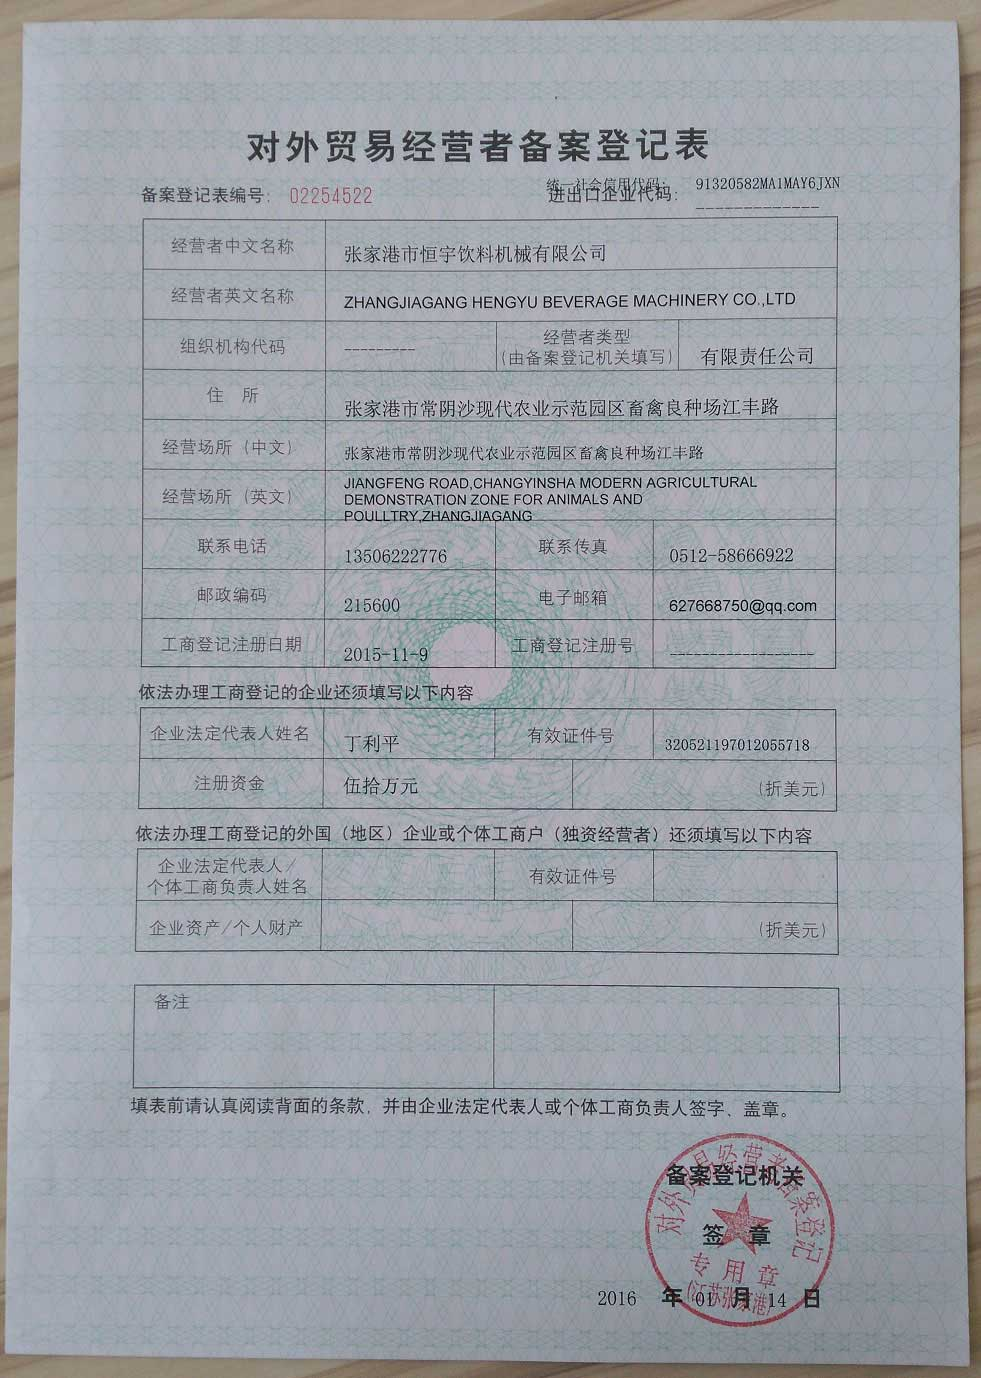 Registration Form for Foreign Trade